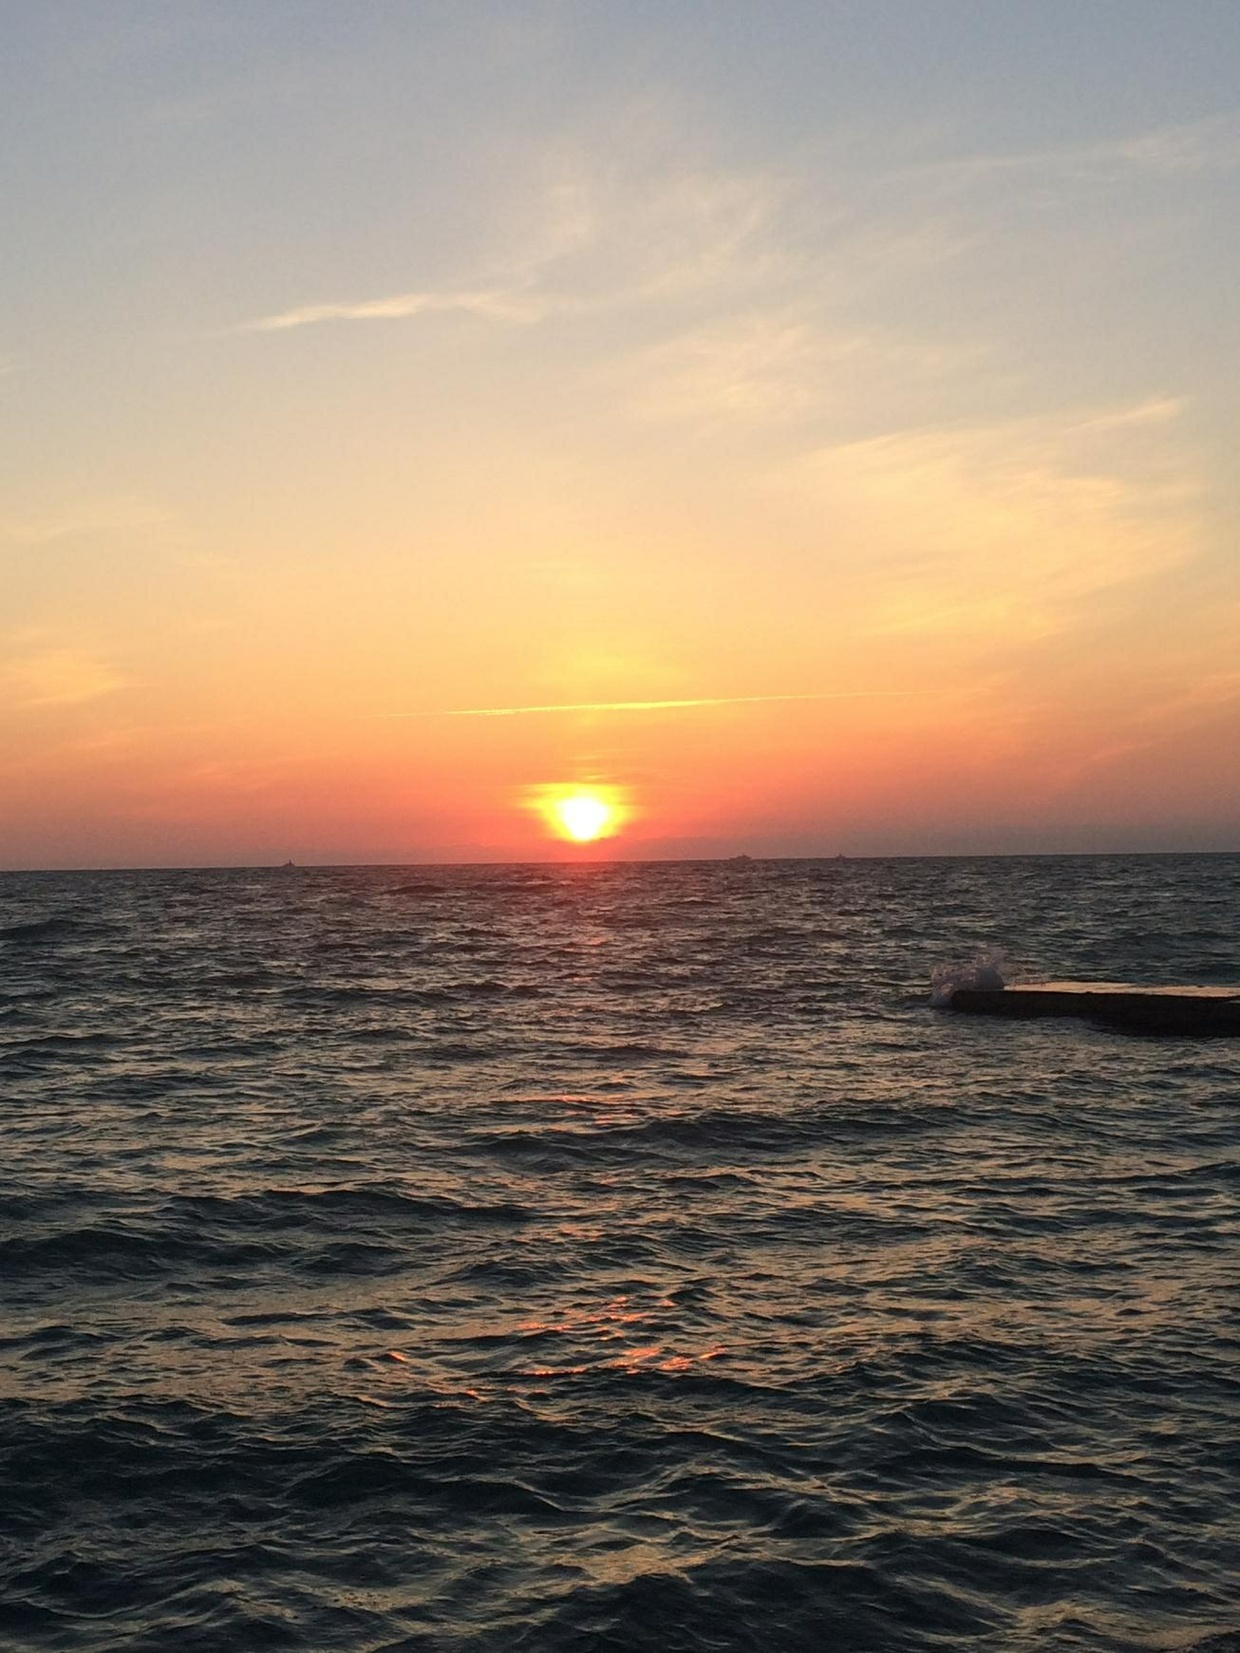 Delightful and enchanting sunset on the Black sea!